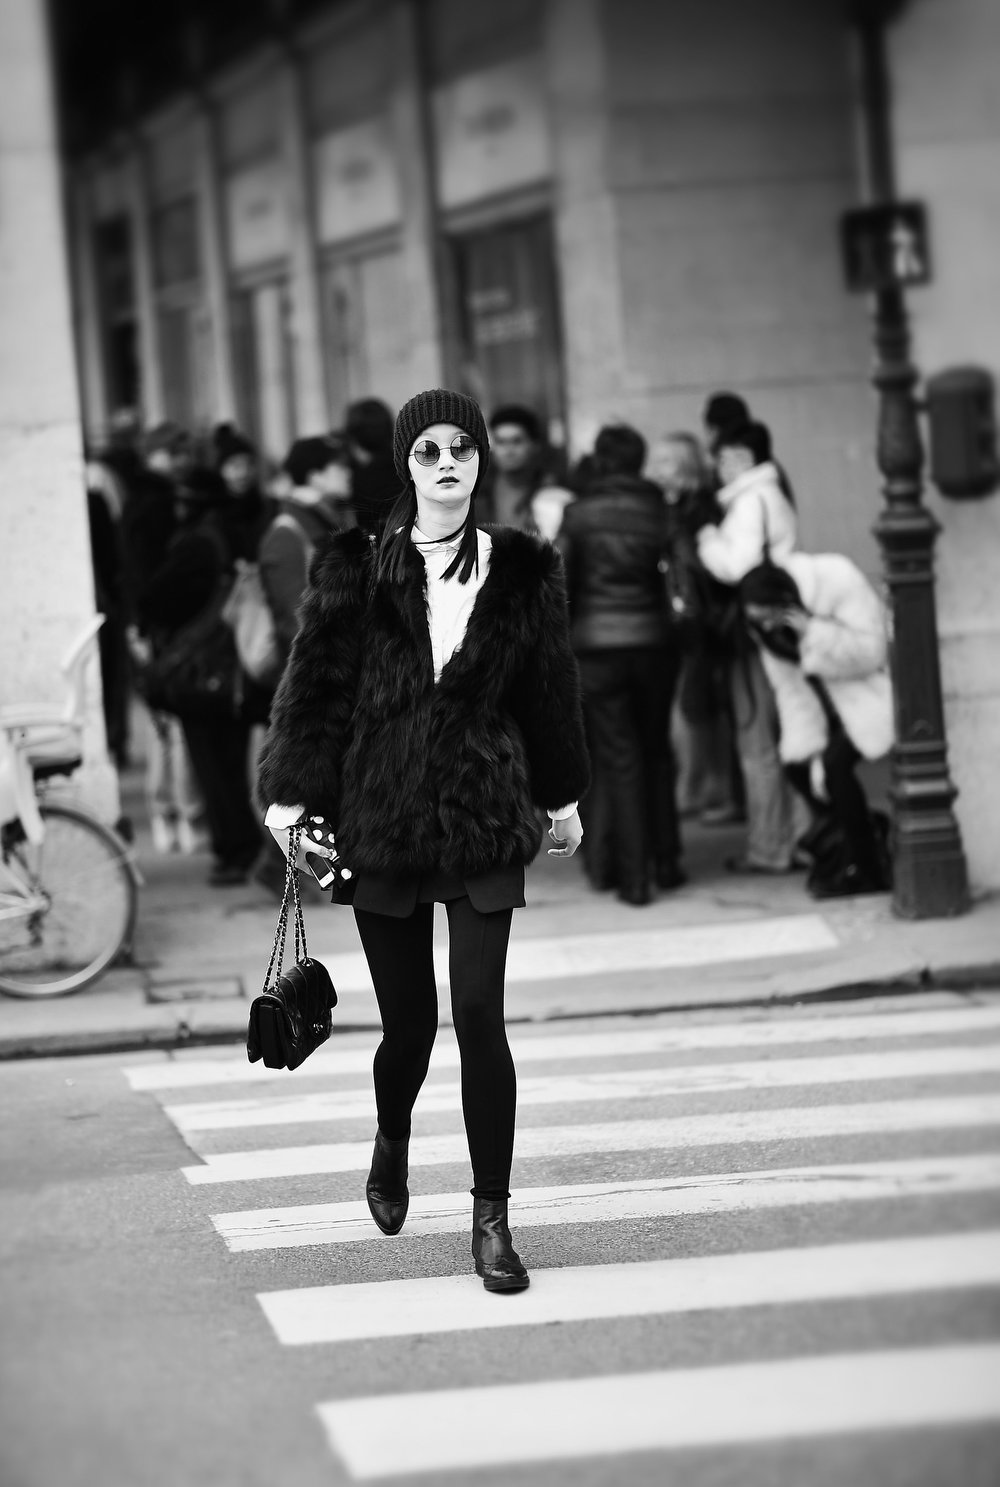 . A model makes her way between shows during Paris Fashion Week on March 2, 2013 in Paris, France.  (Photo by Gareth Cattermole/Getty Images)